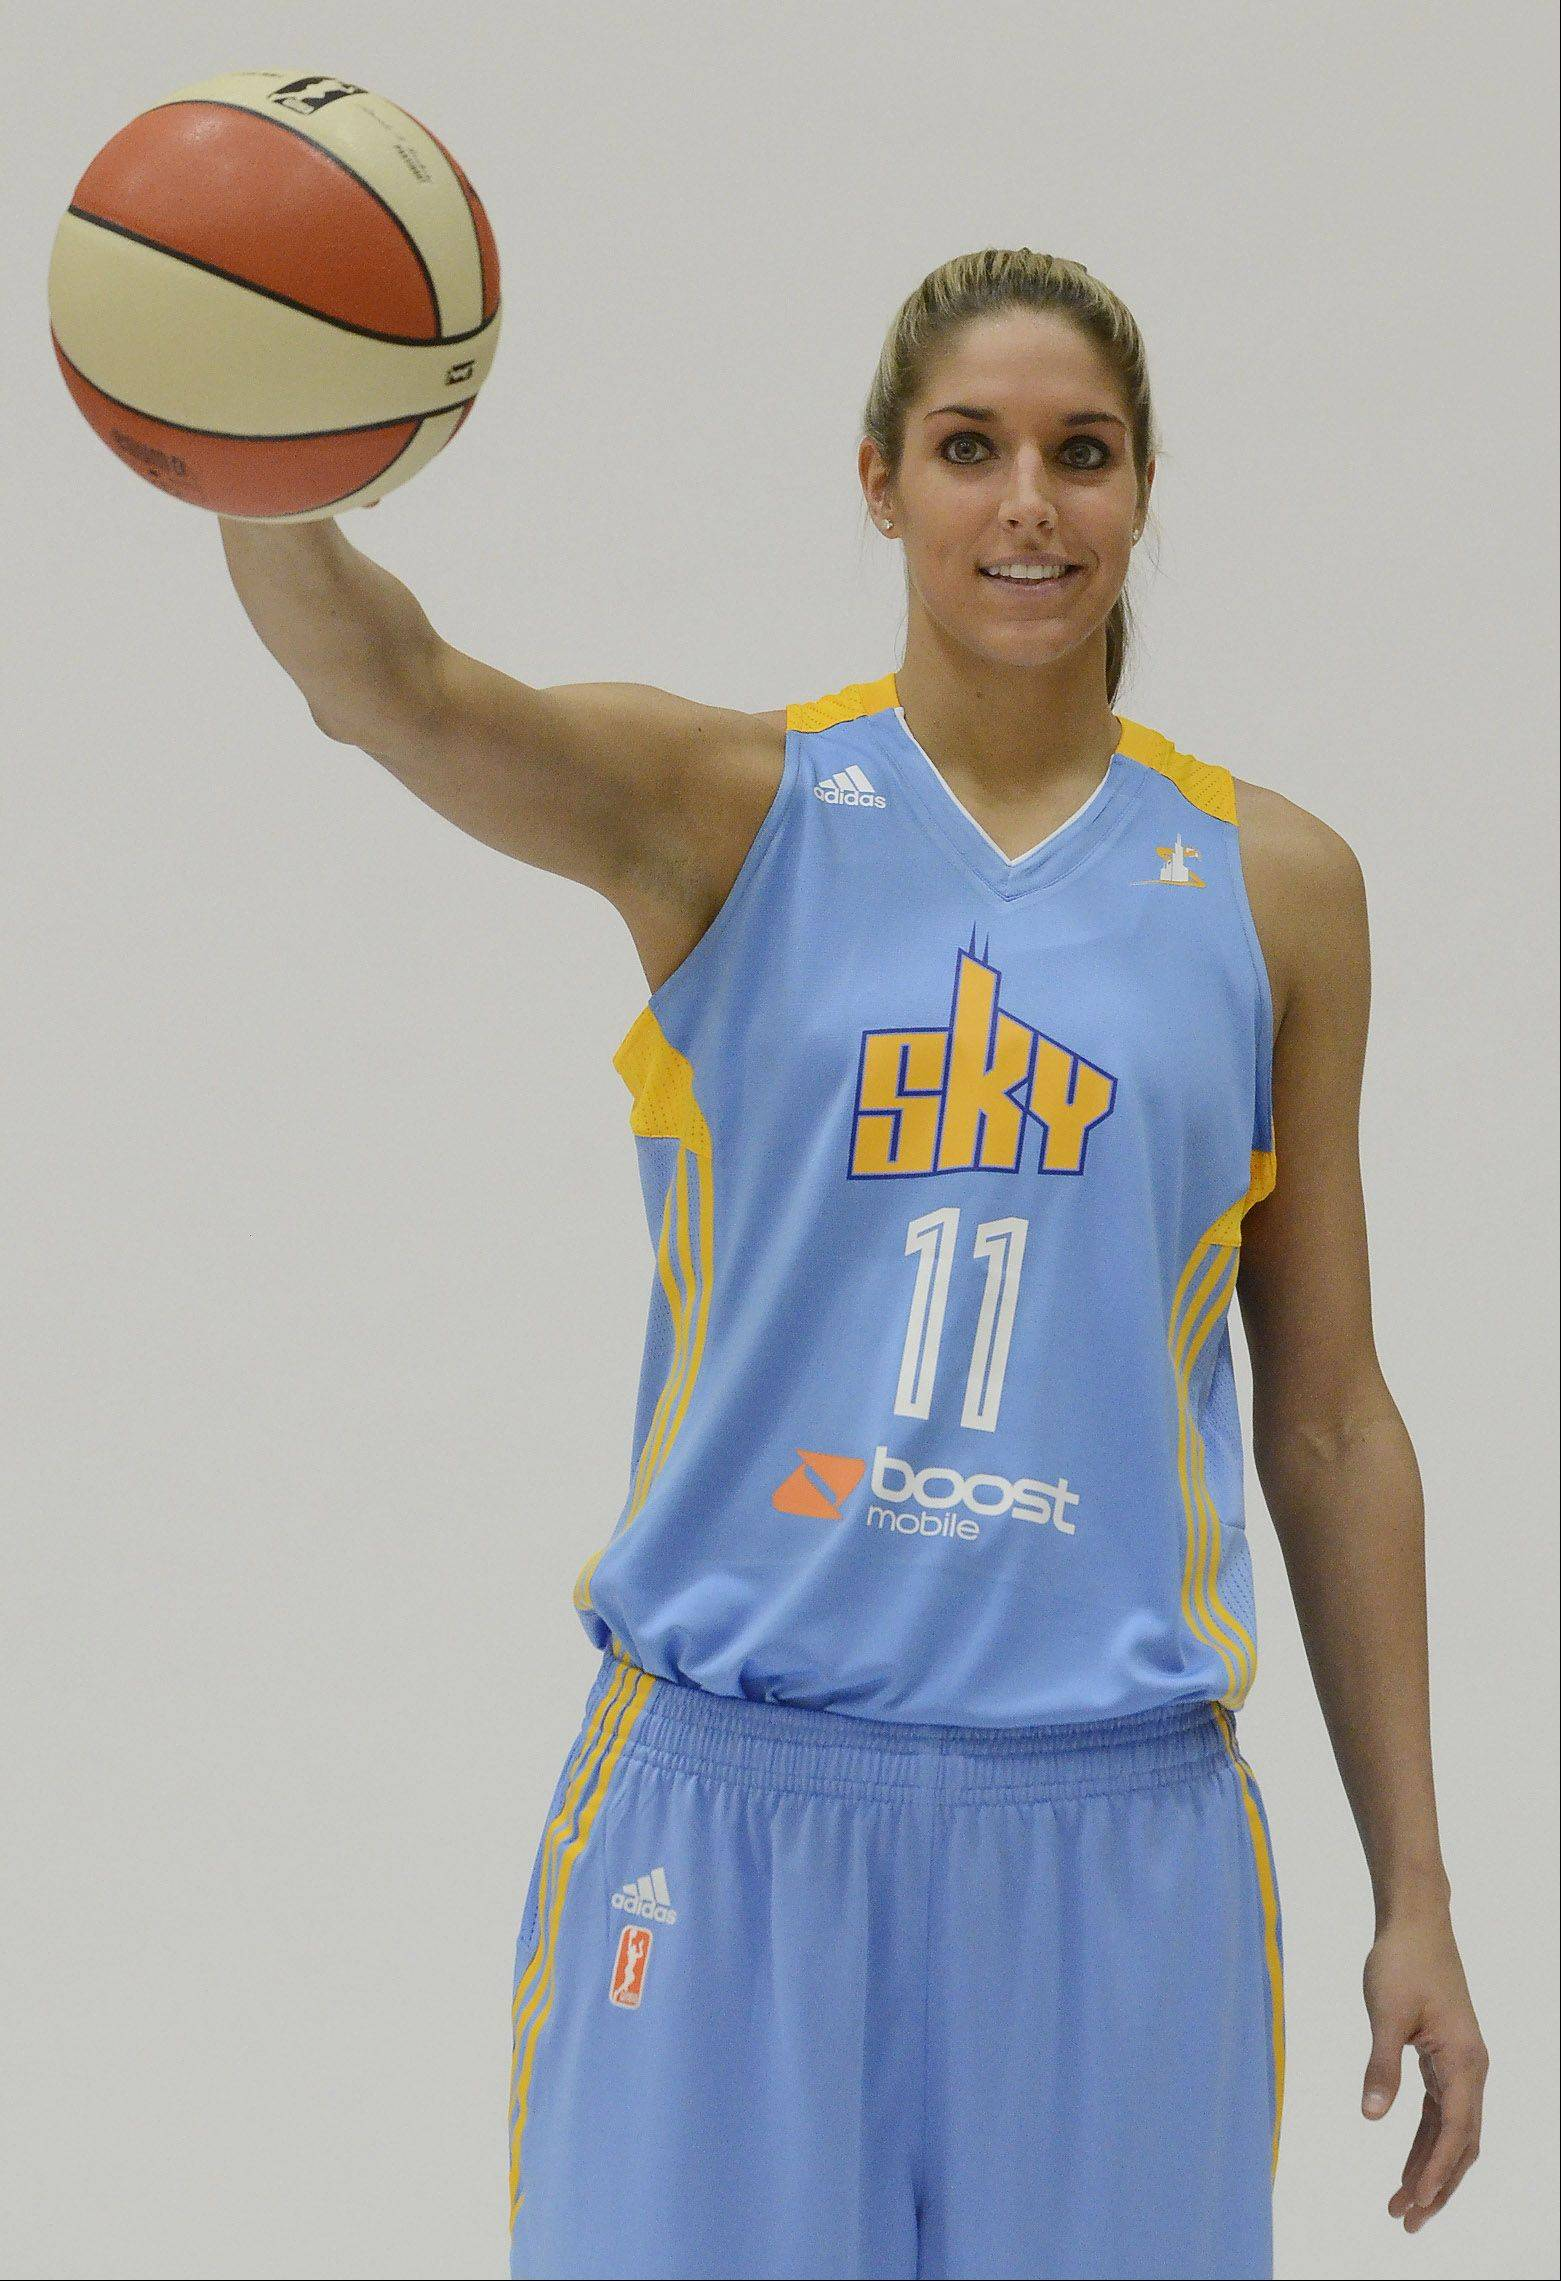 Elena Delle Donne, the Chicago Sky's top draft pick this season, draws strength and perspective from her strong family relationships.